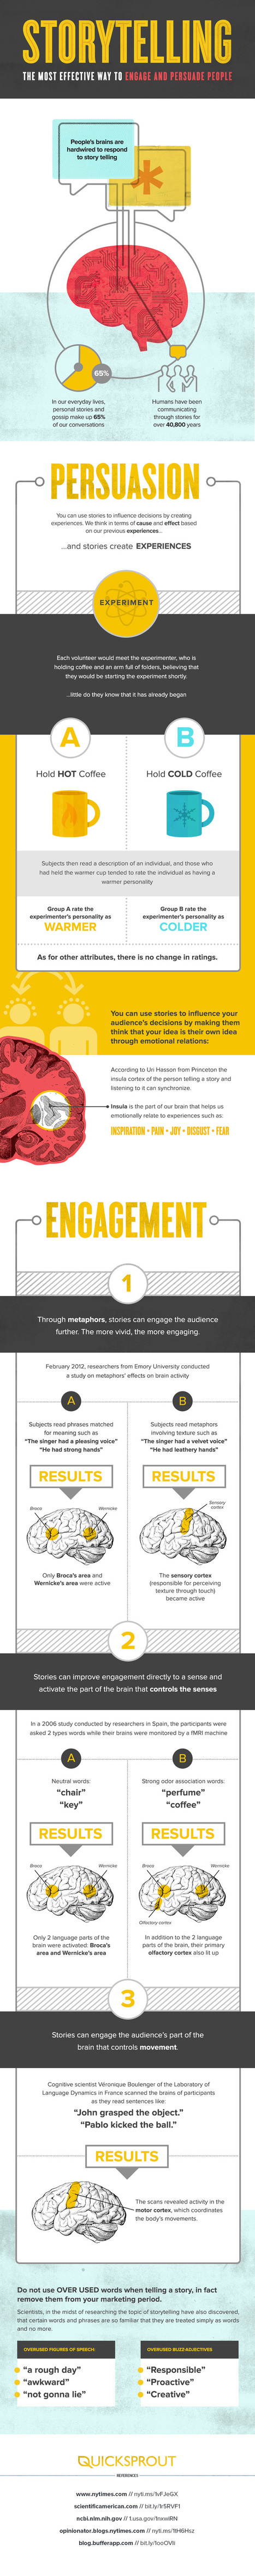 How to Engage and Persuade People Through Storytelling | Digital Marketing | Scoop.it